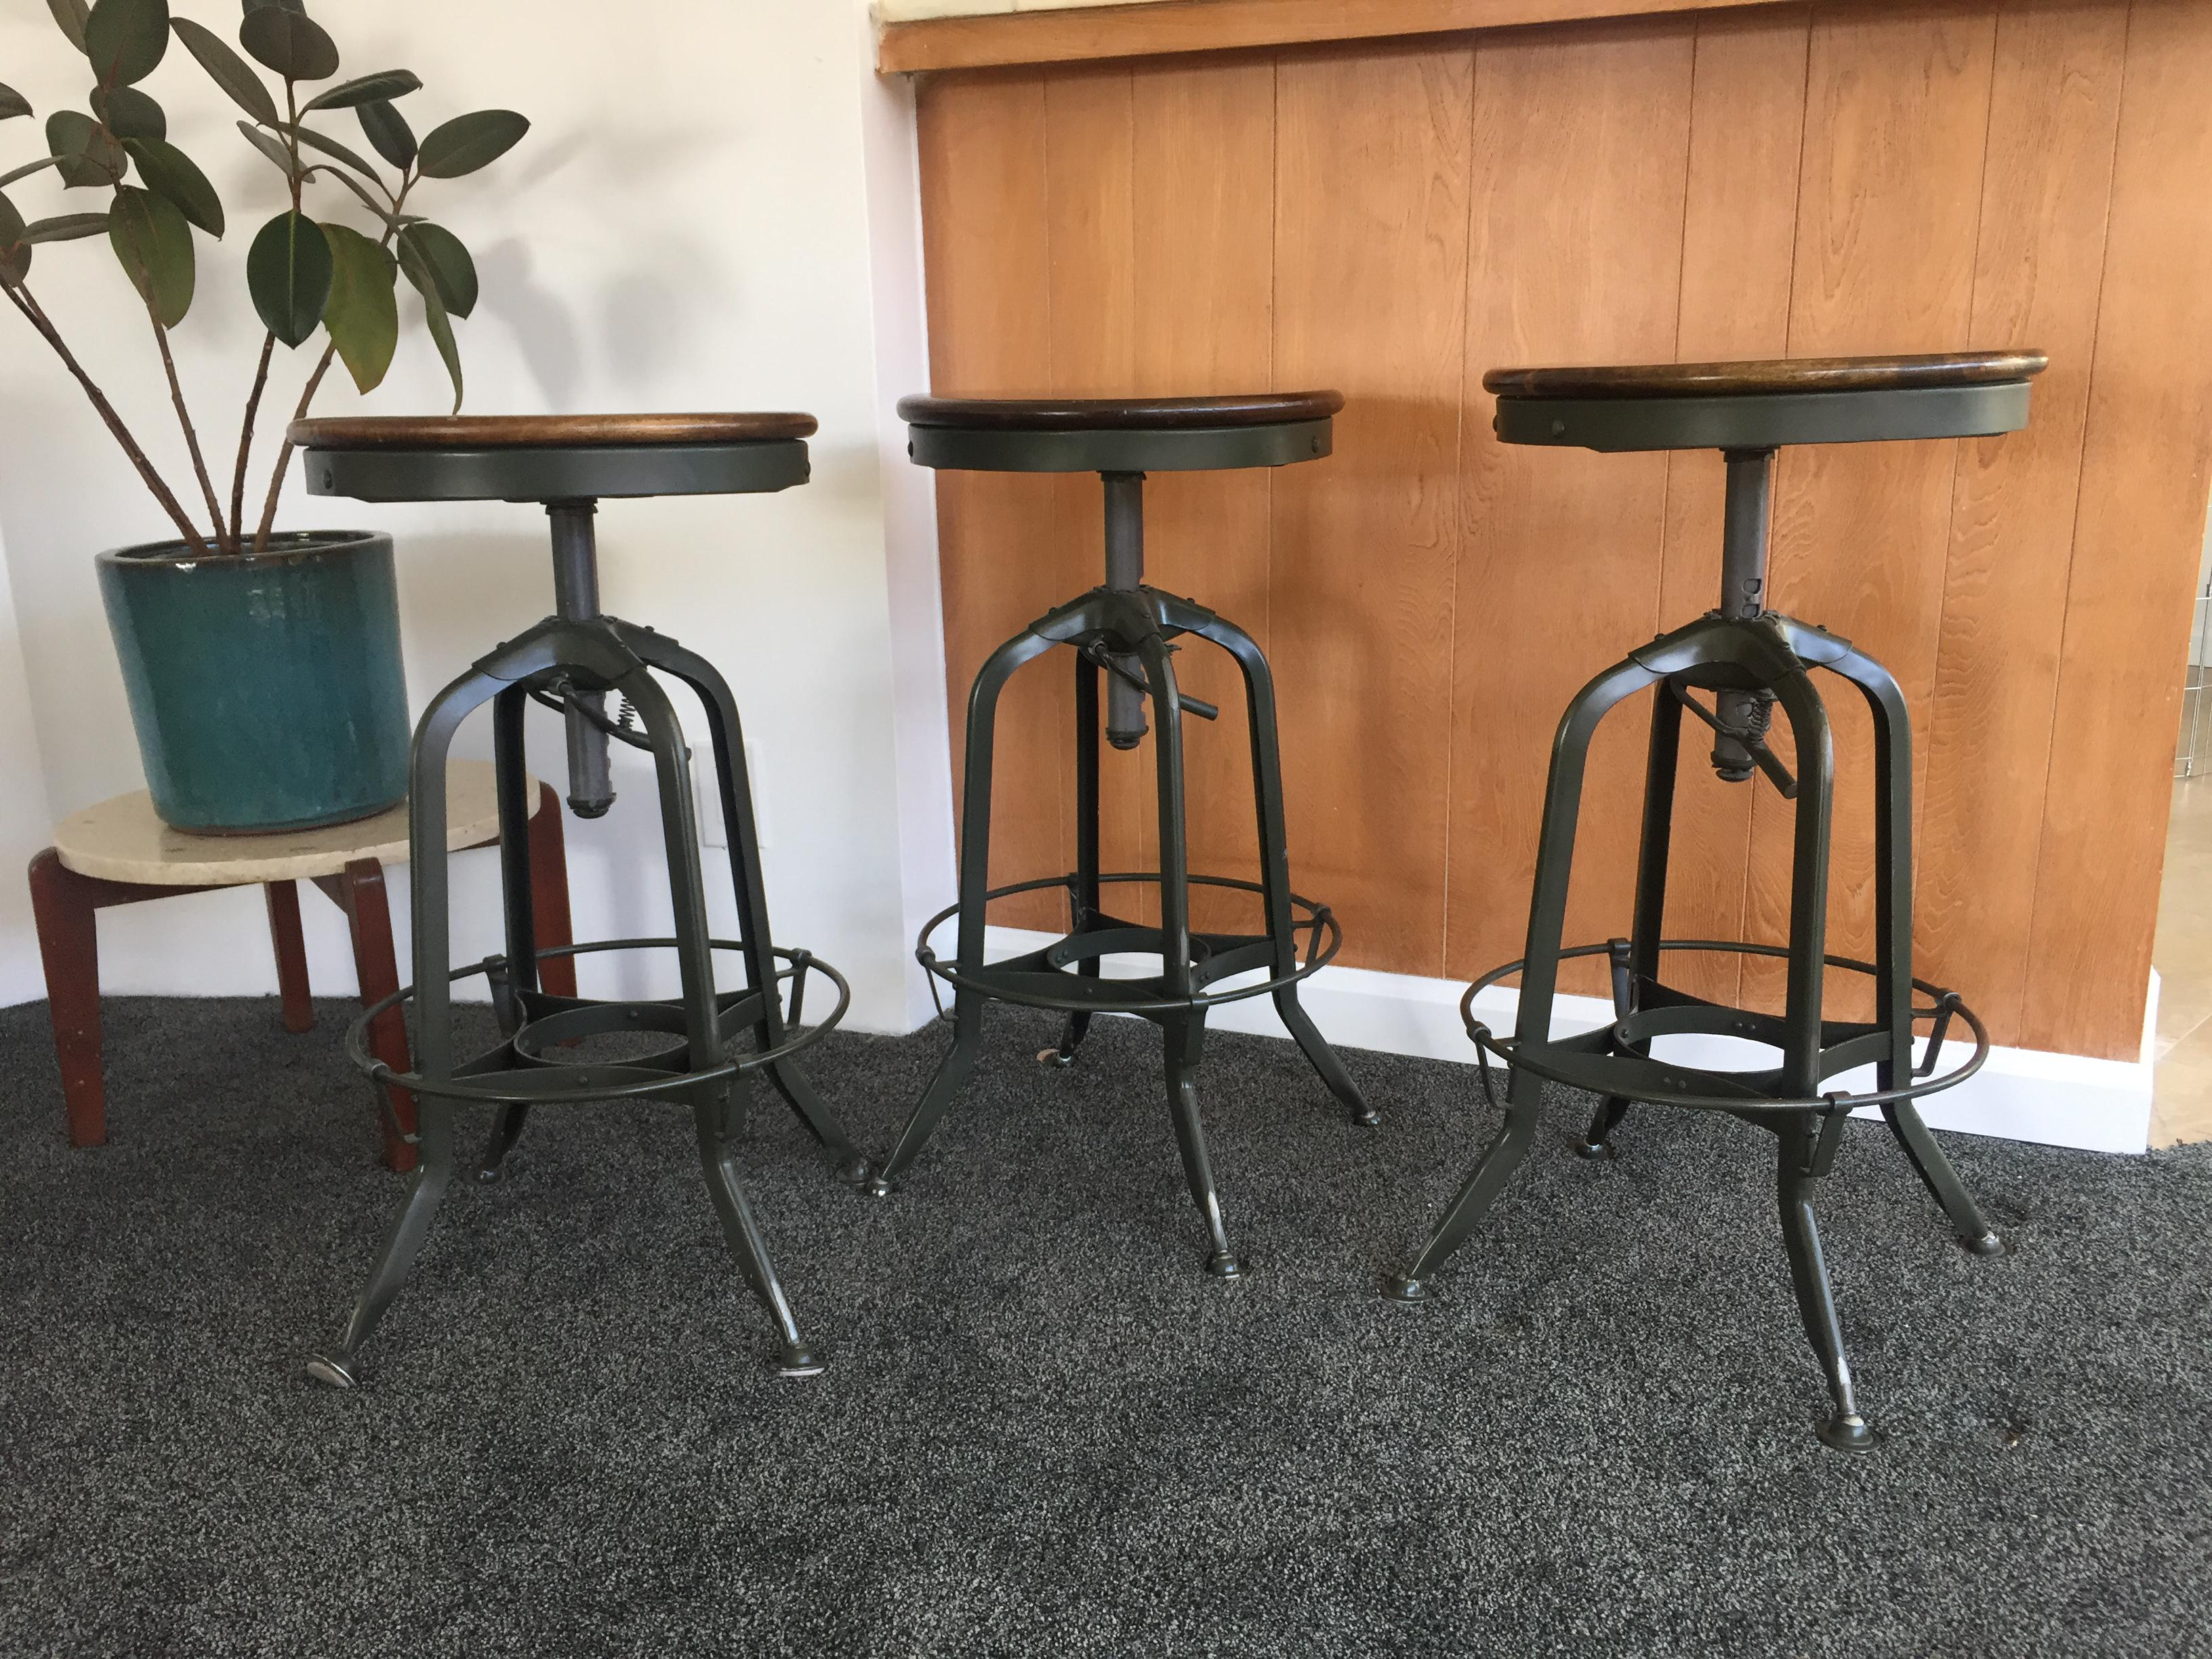 Restoration Hardware Toledo Stools Set Of 3 Chairish